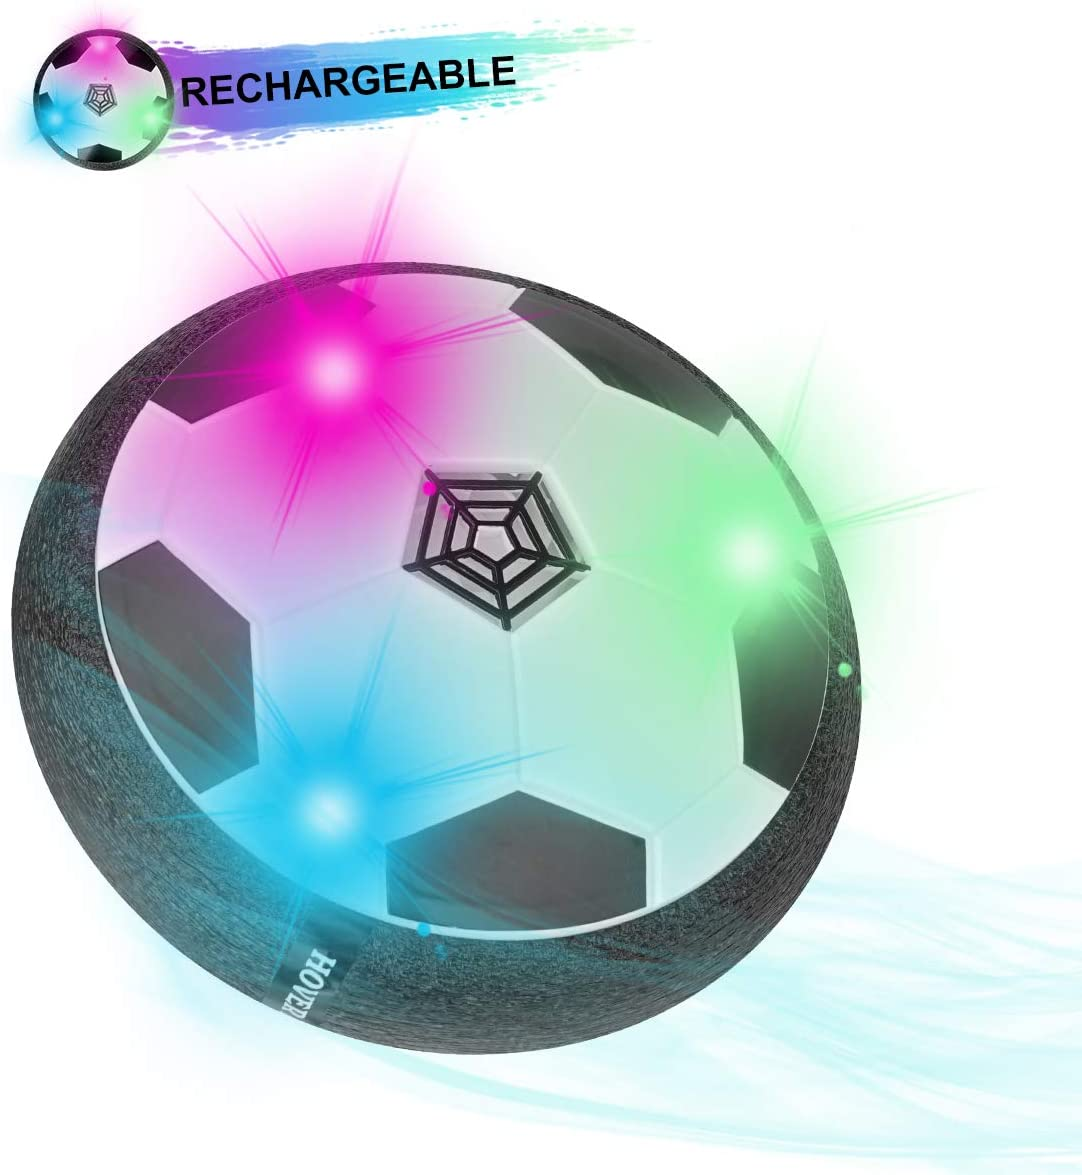 Herefun Air power Football Kids Toys Birthday Gifts for Boys Girls Toddlers Summer Sport Ball Games Indoor Outdoor Hover Floating Soccer Ball Rechargeable with Colorful LED Light Foam Bumper